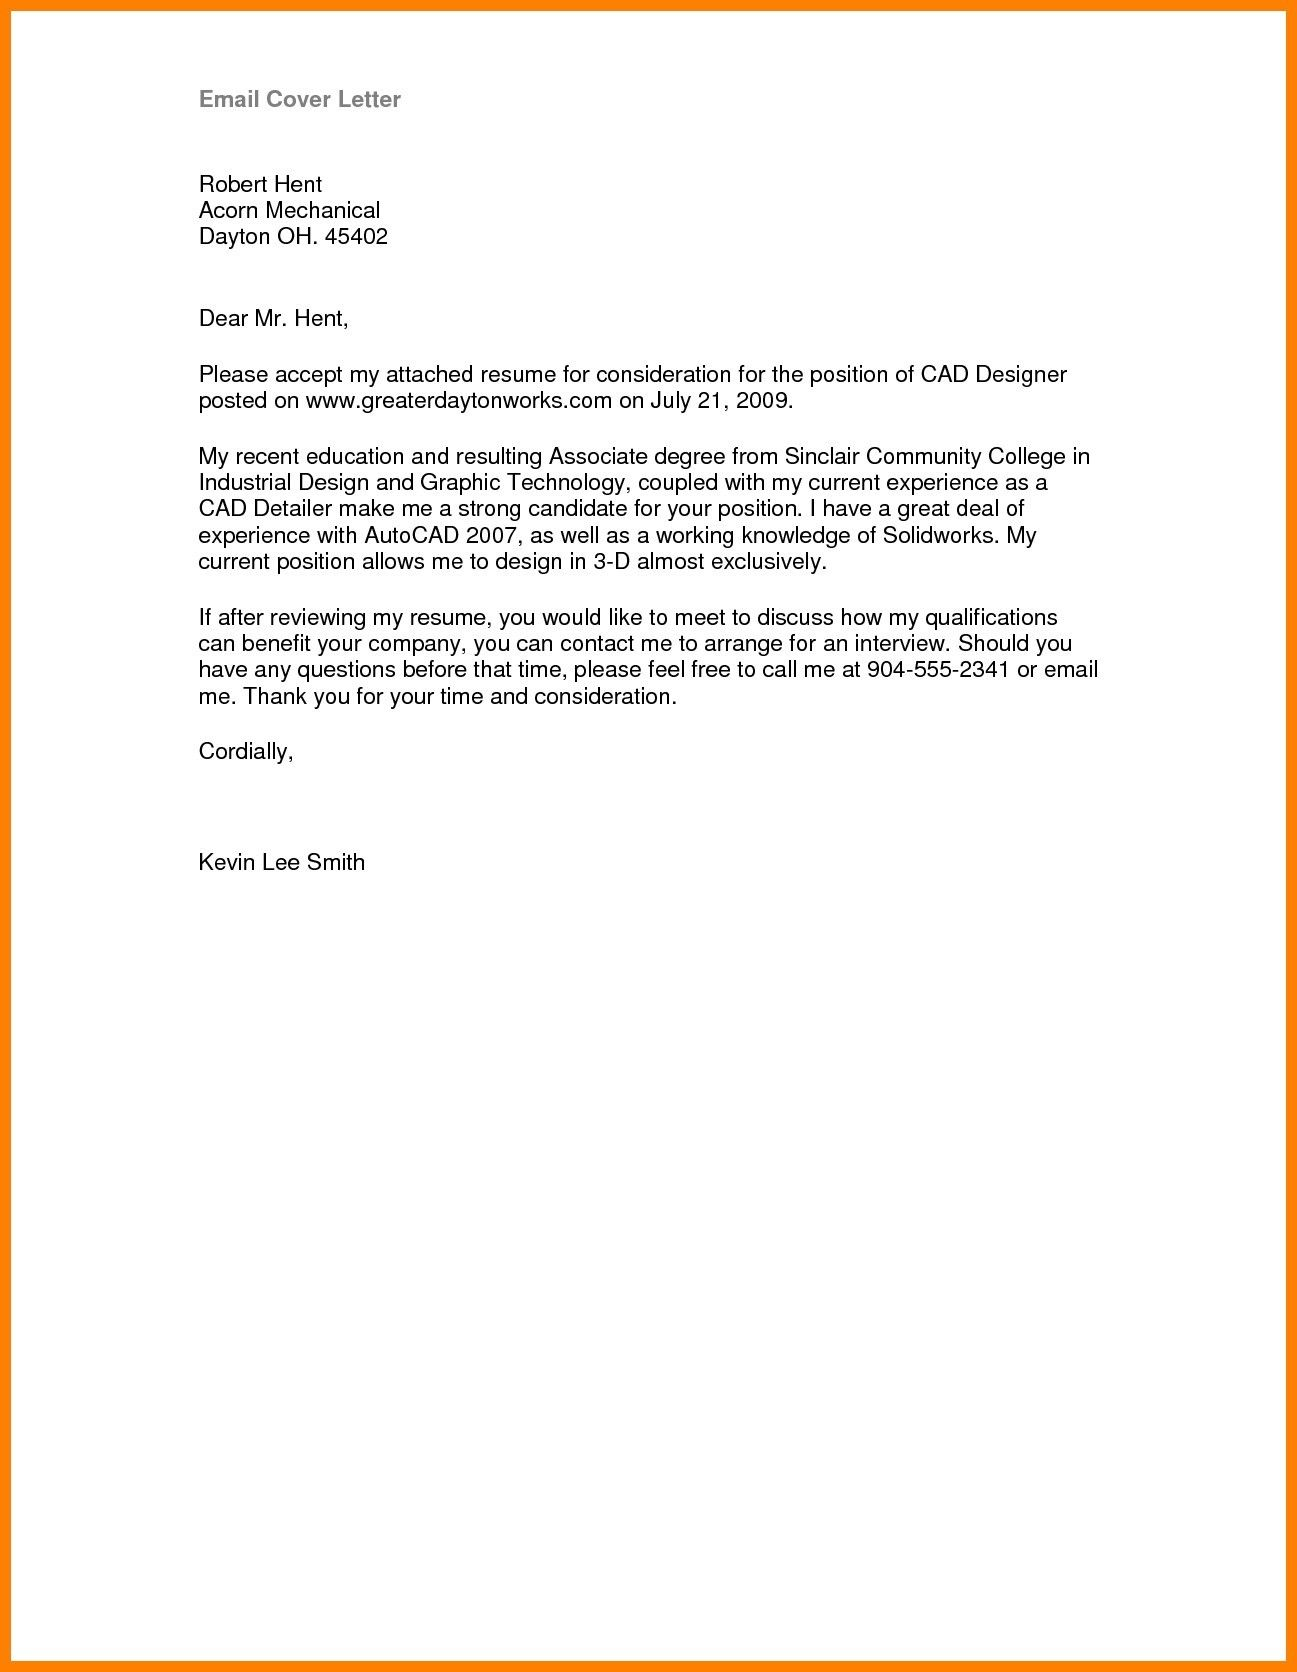 25 Email Cover Letter Sample Cover Letter Examples For Job